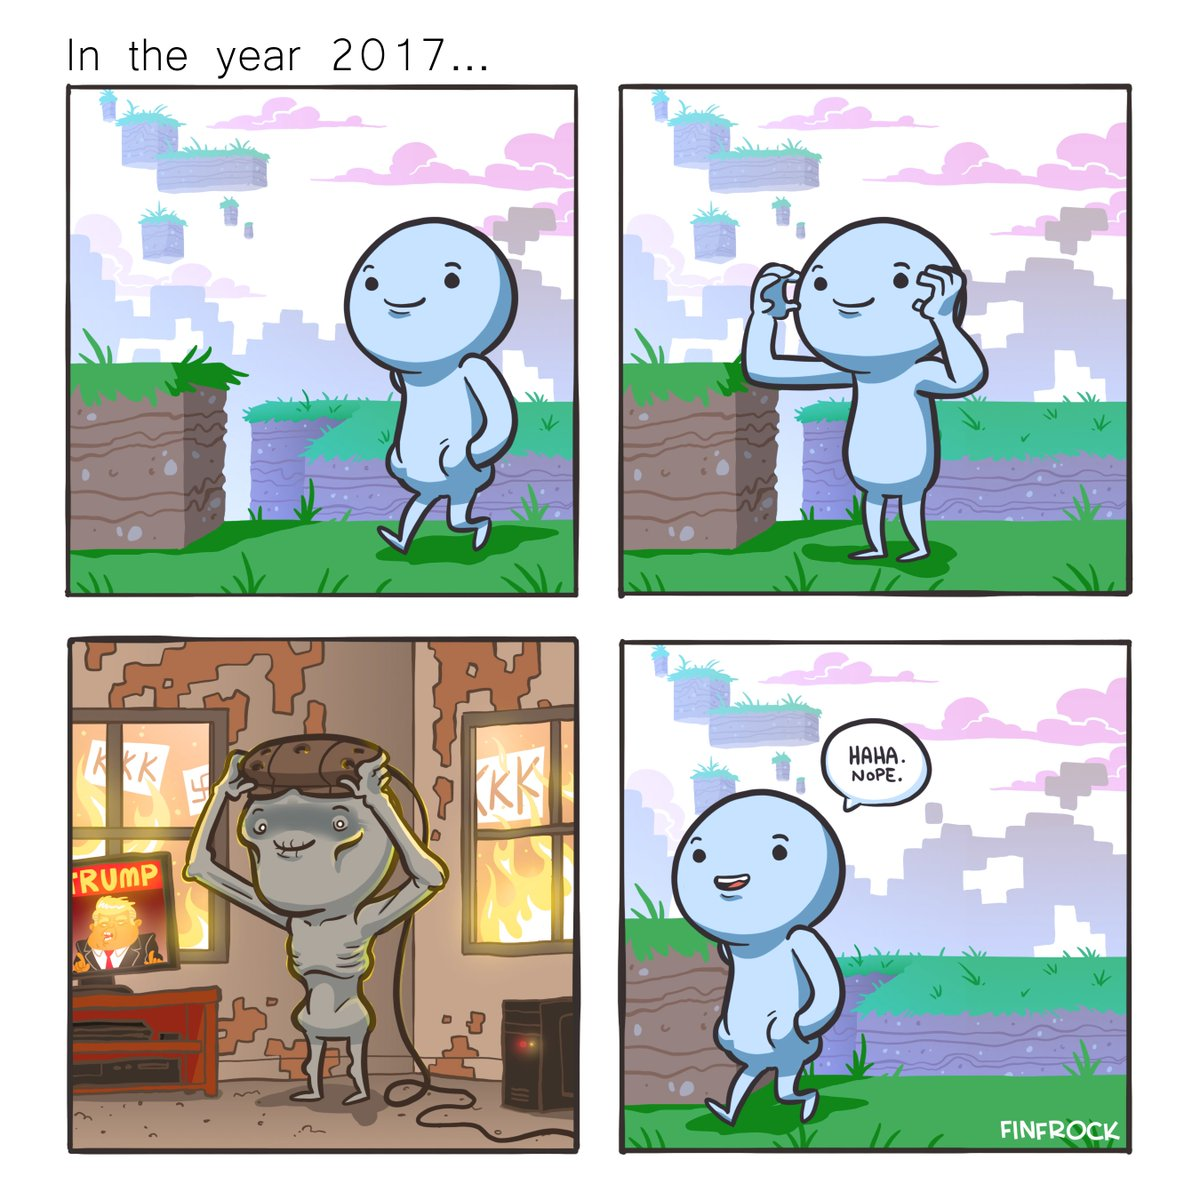 In the year 2017... https://t.co/GGhgeiYG5p